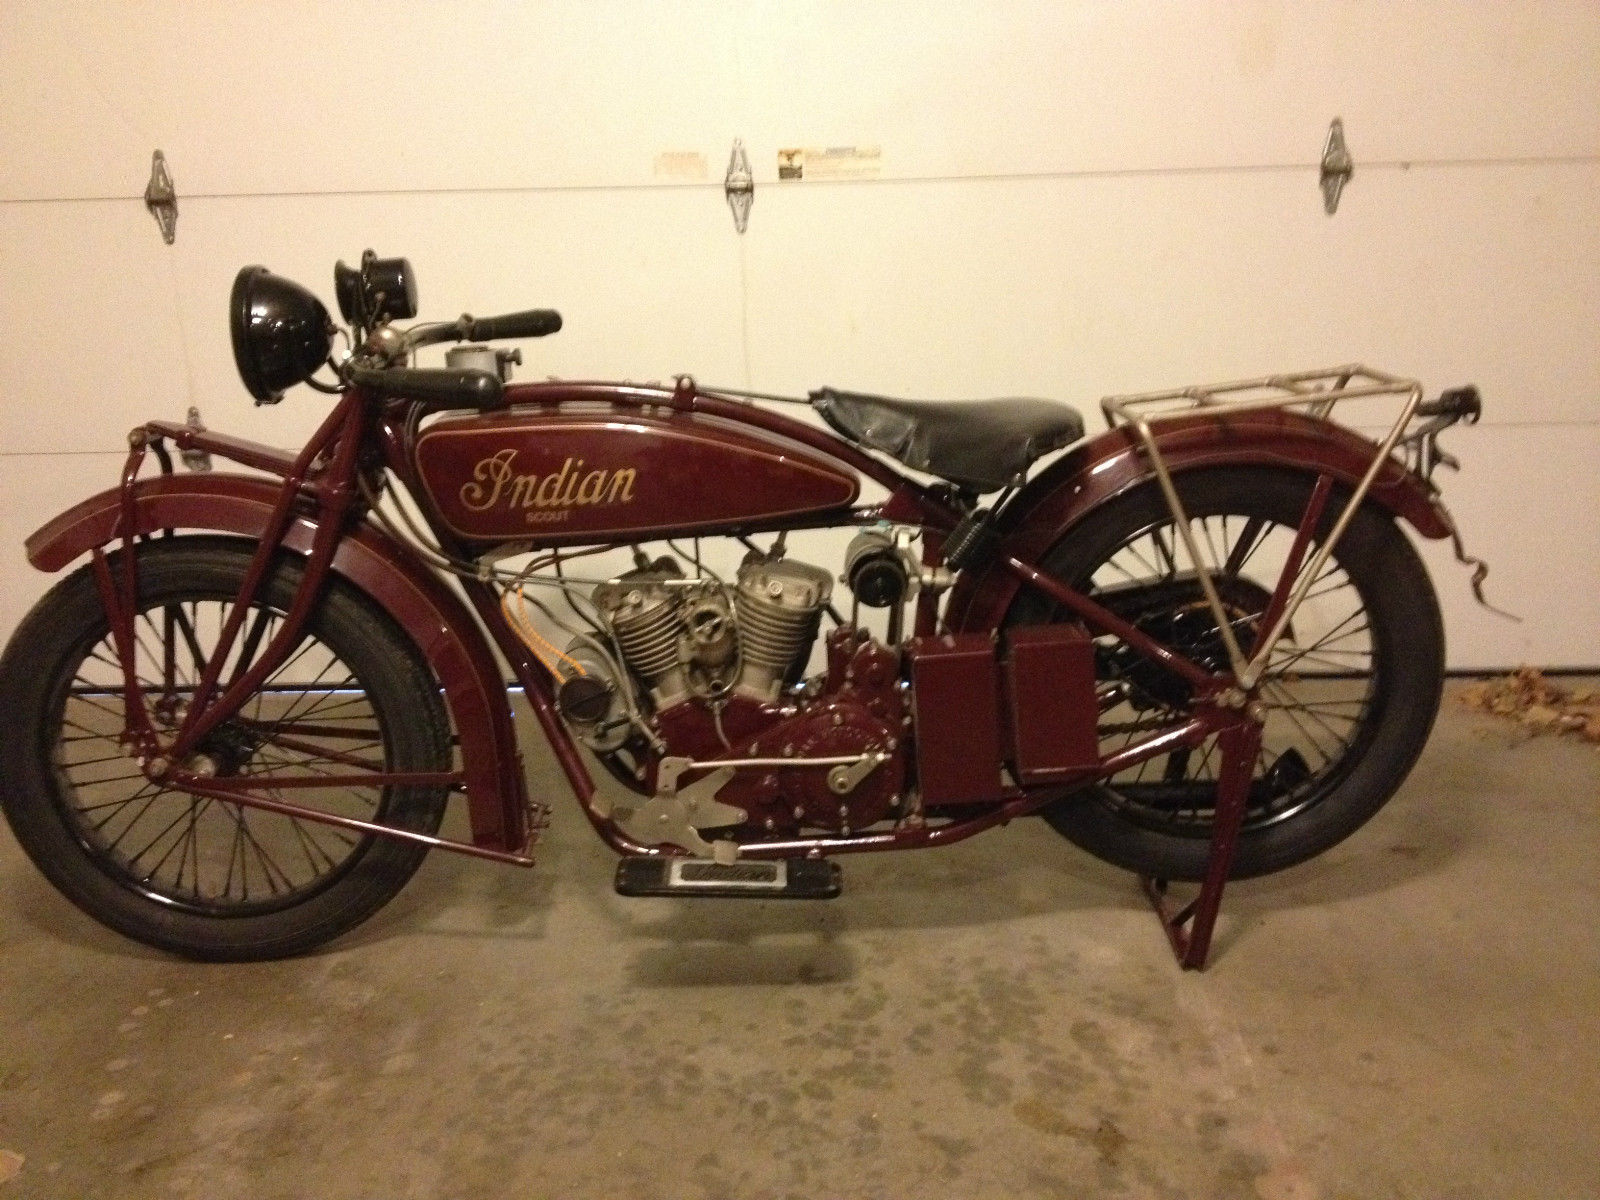 ... Indian Motorcycle For Sale Indian Scout Motorcycle Indian Motorcycle